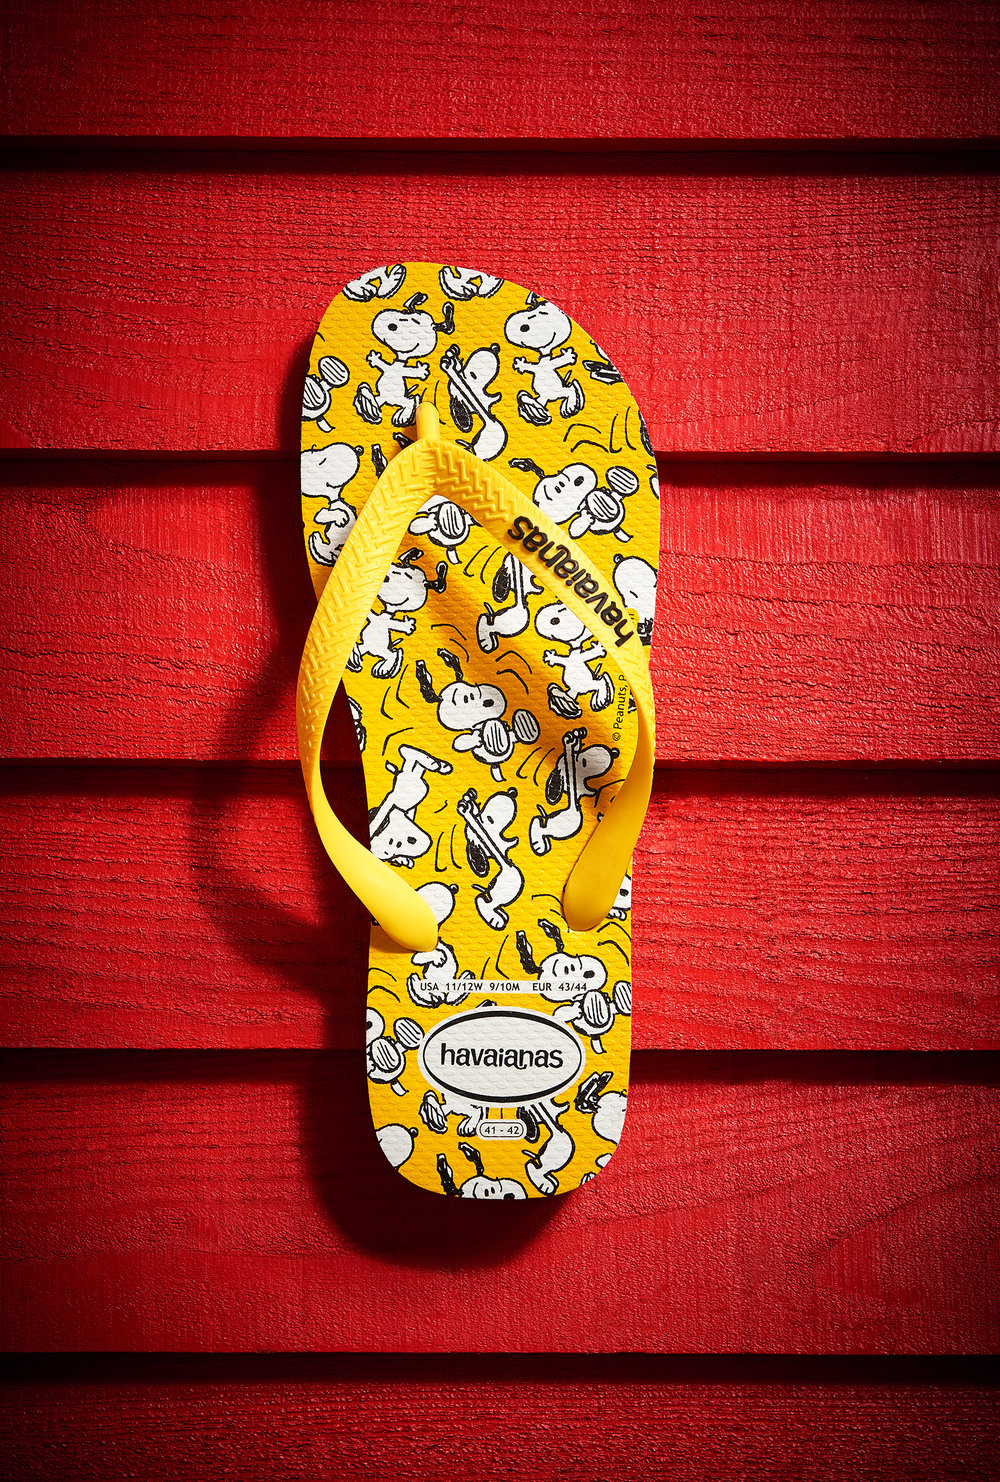 Product still life image for a Havaianas, a footwear company featuring Snoopy and the Peanuts gang